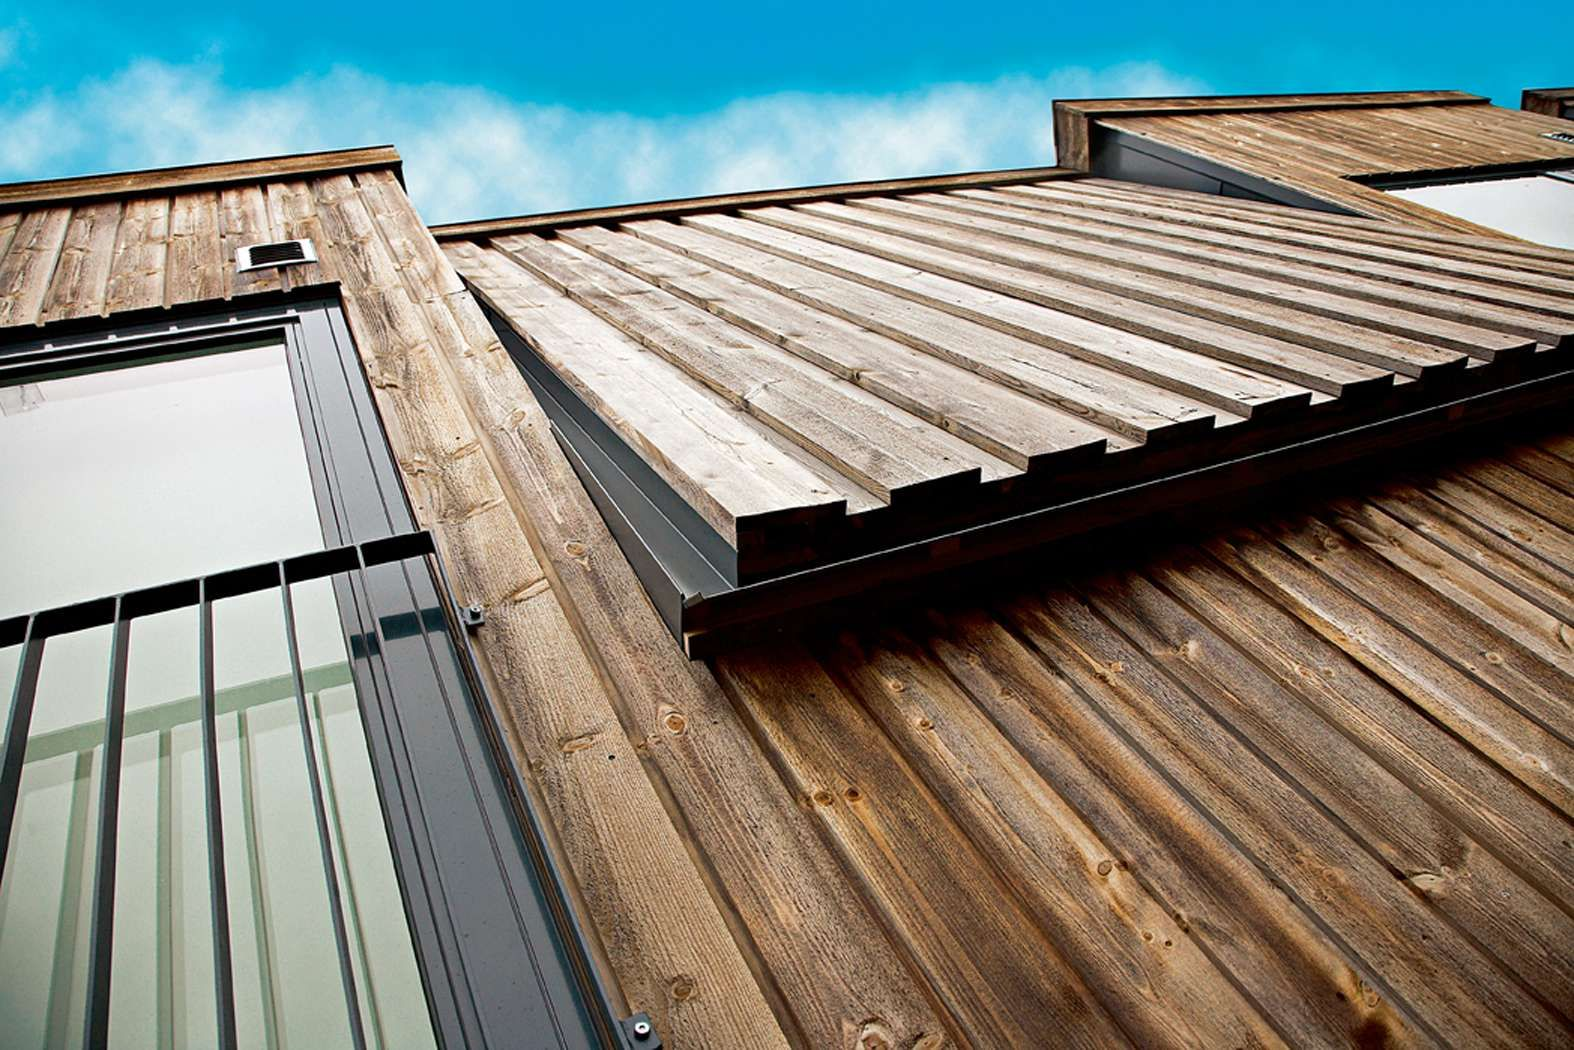 Vertical batten board cladding exterior claddings for Exterior board